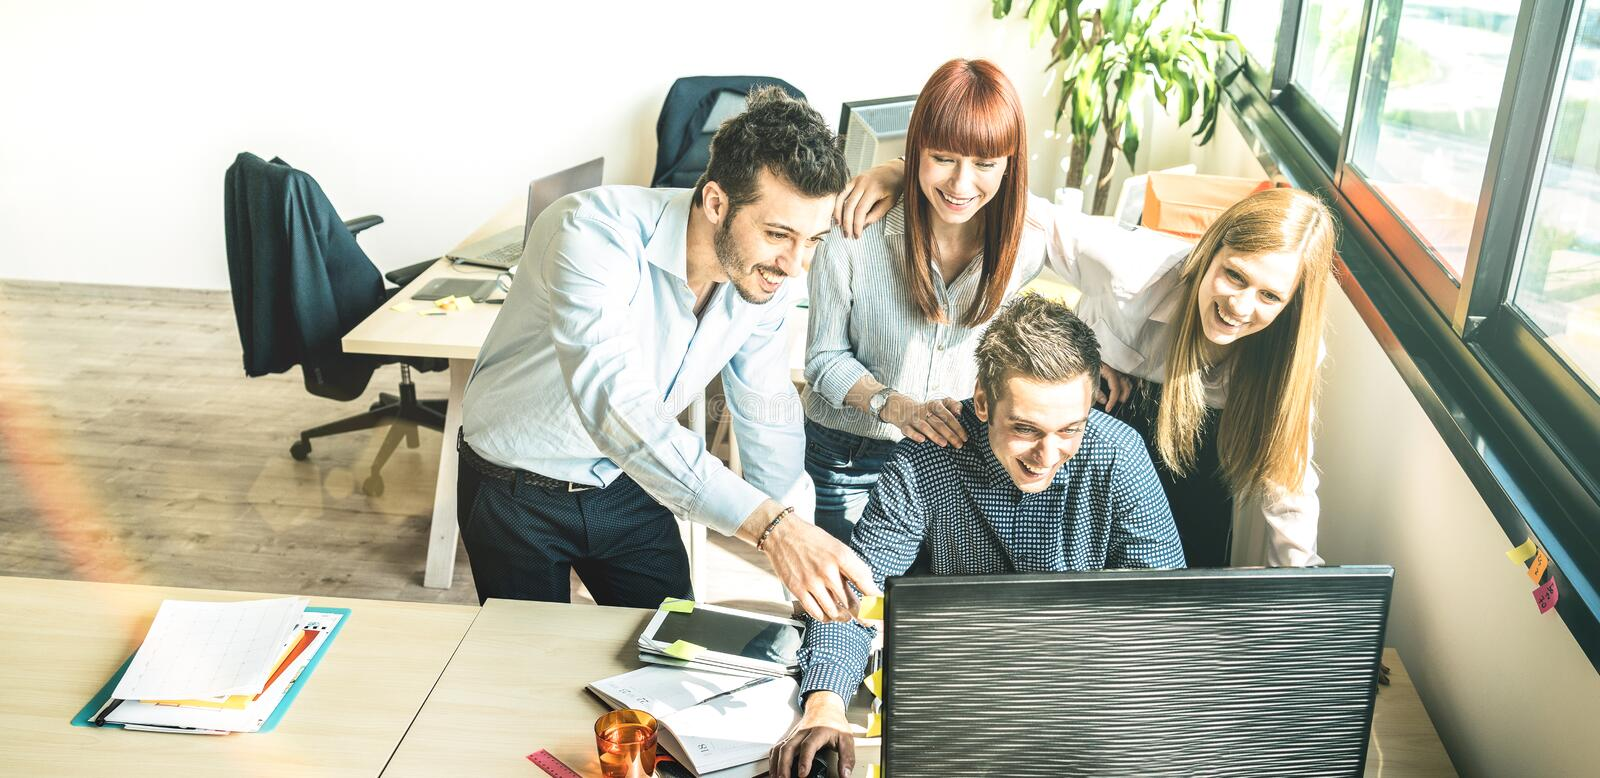 Young people employee coworkers at startup business meeting in urban coworking space studio - Human resources concept at working royalty free stock photo